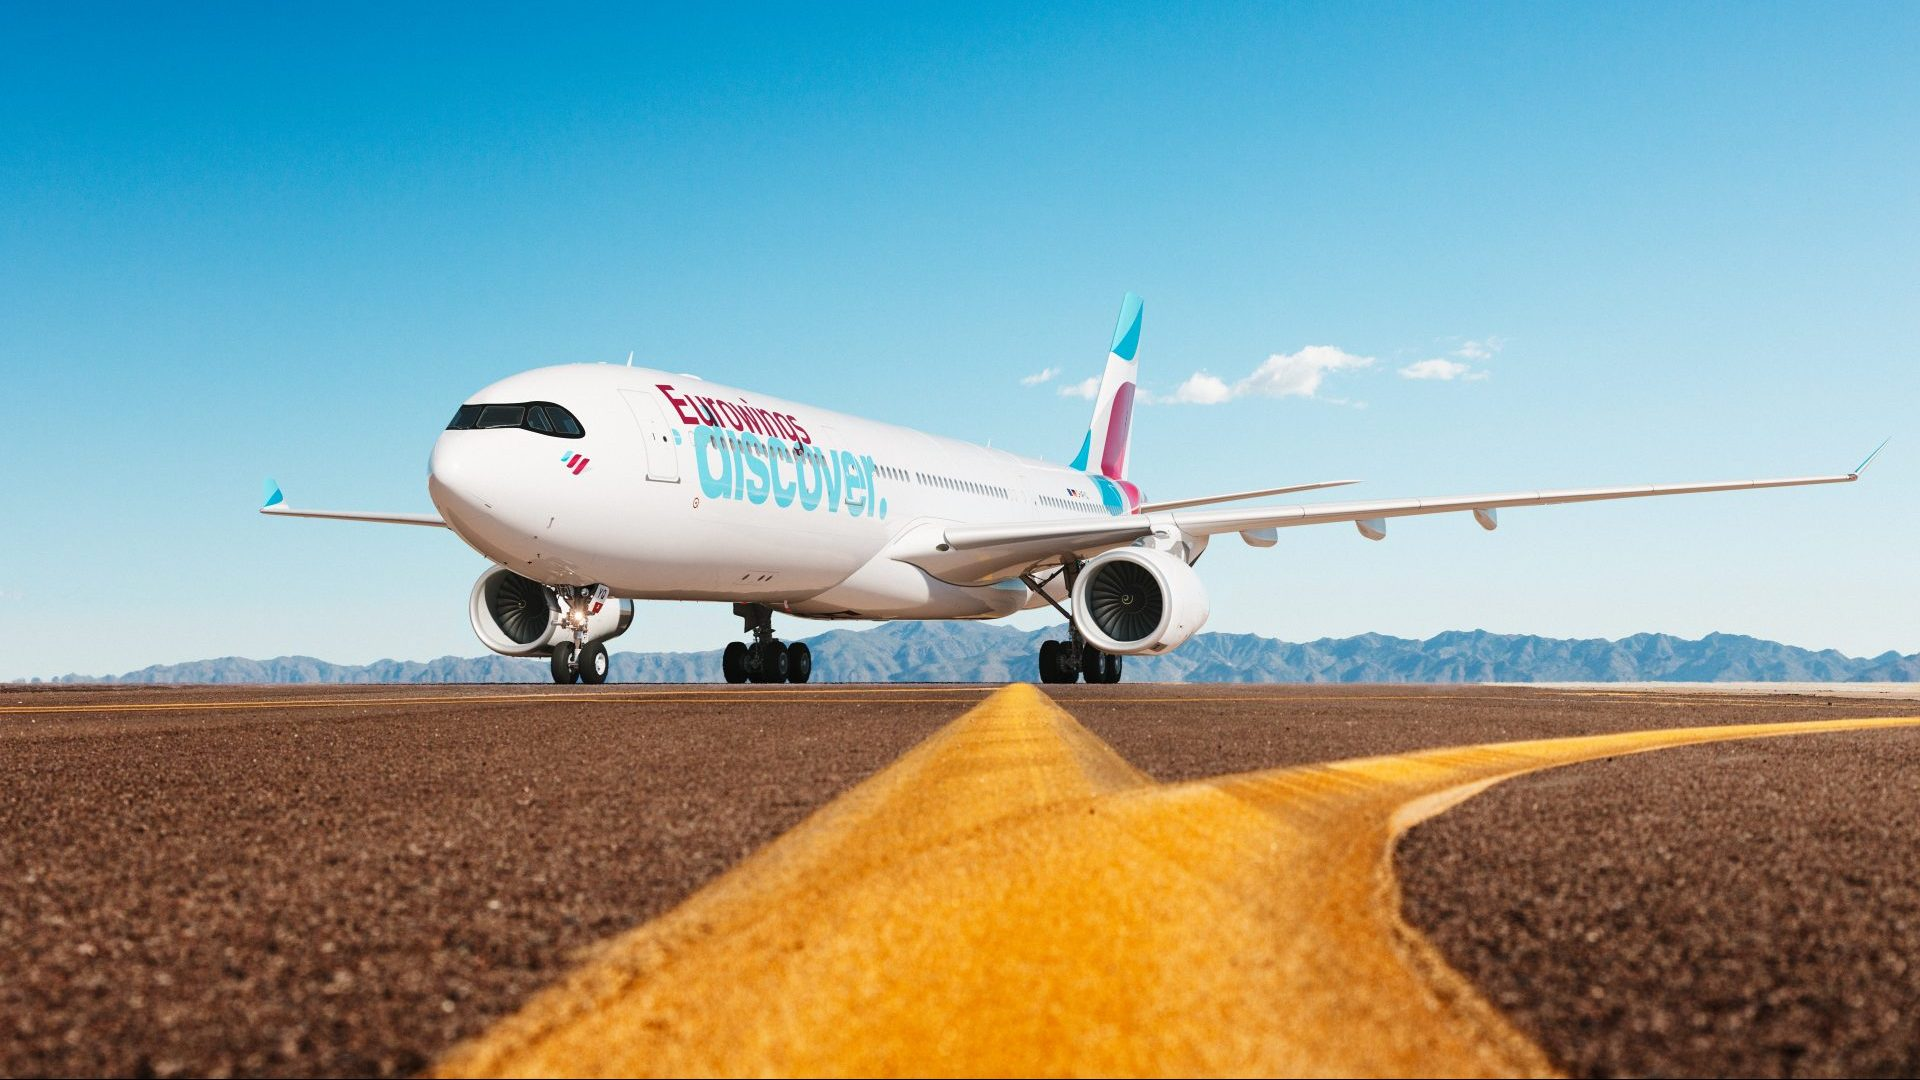 Eurowings Discover A330 300